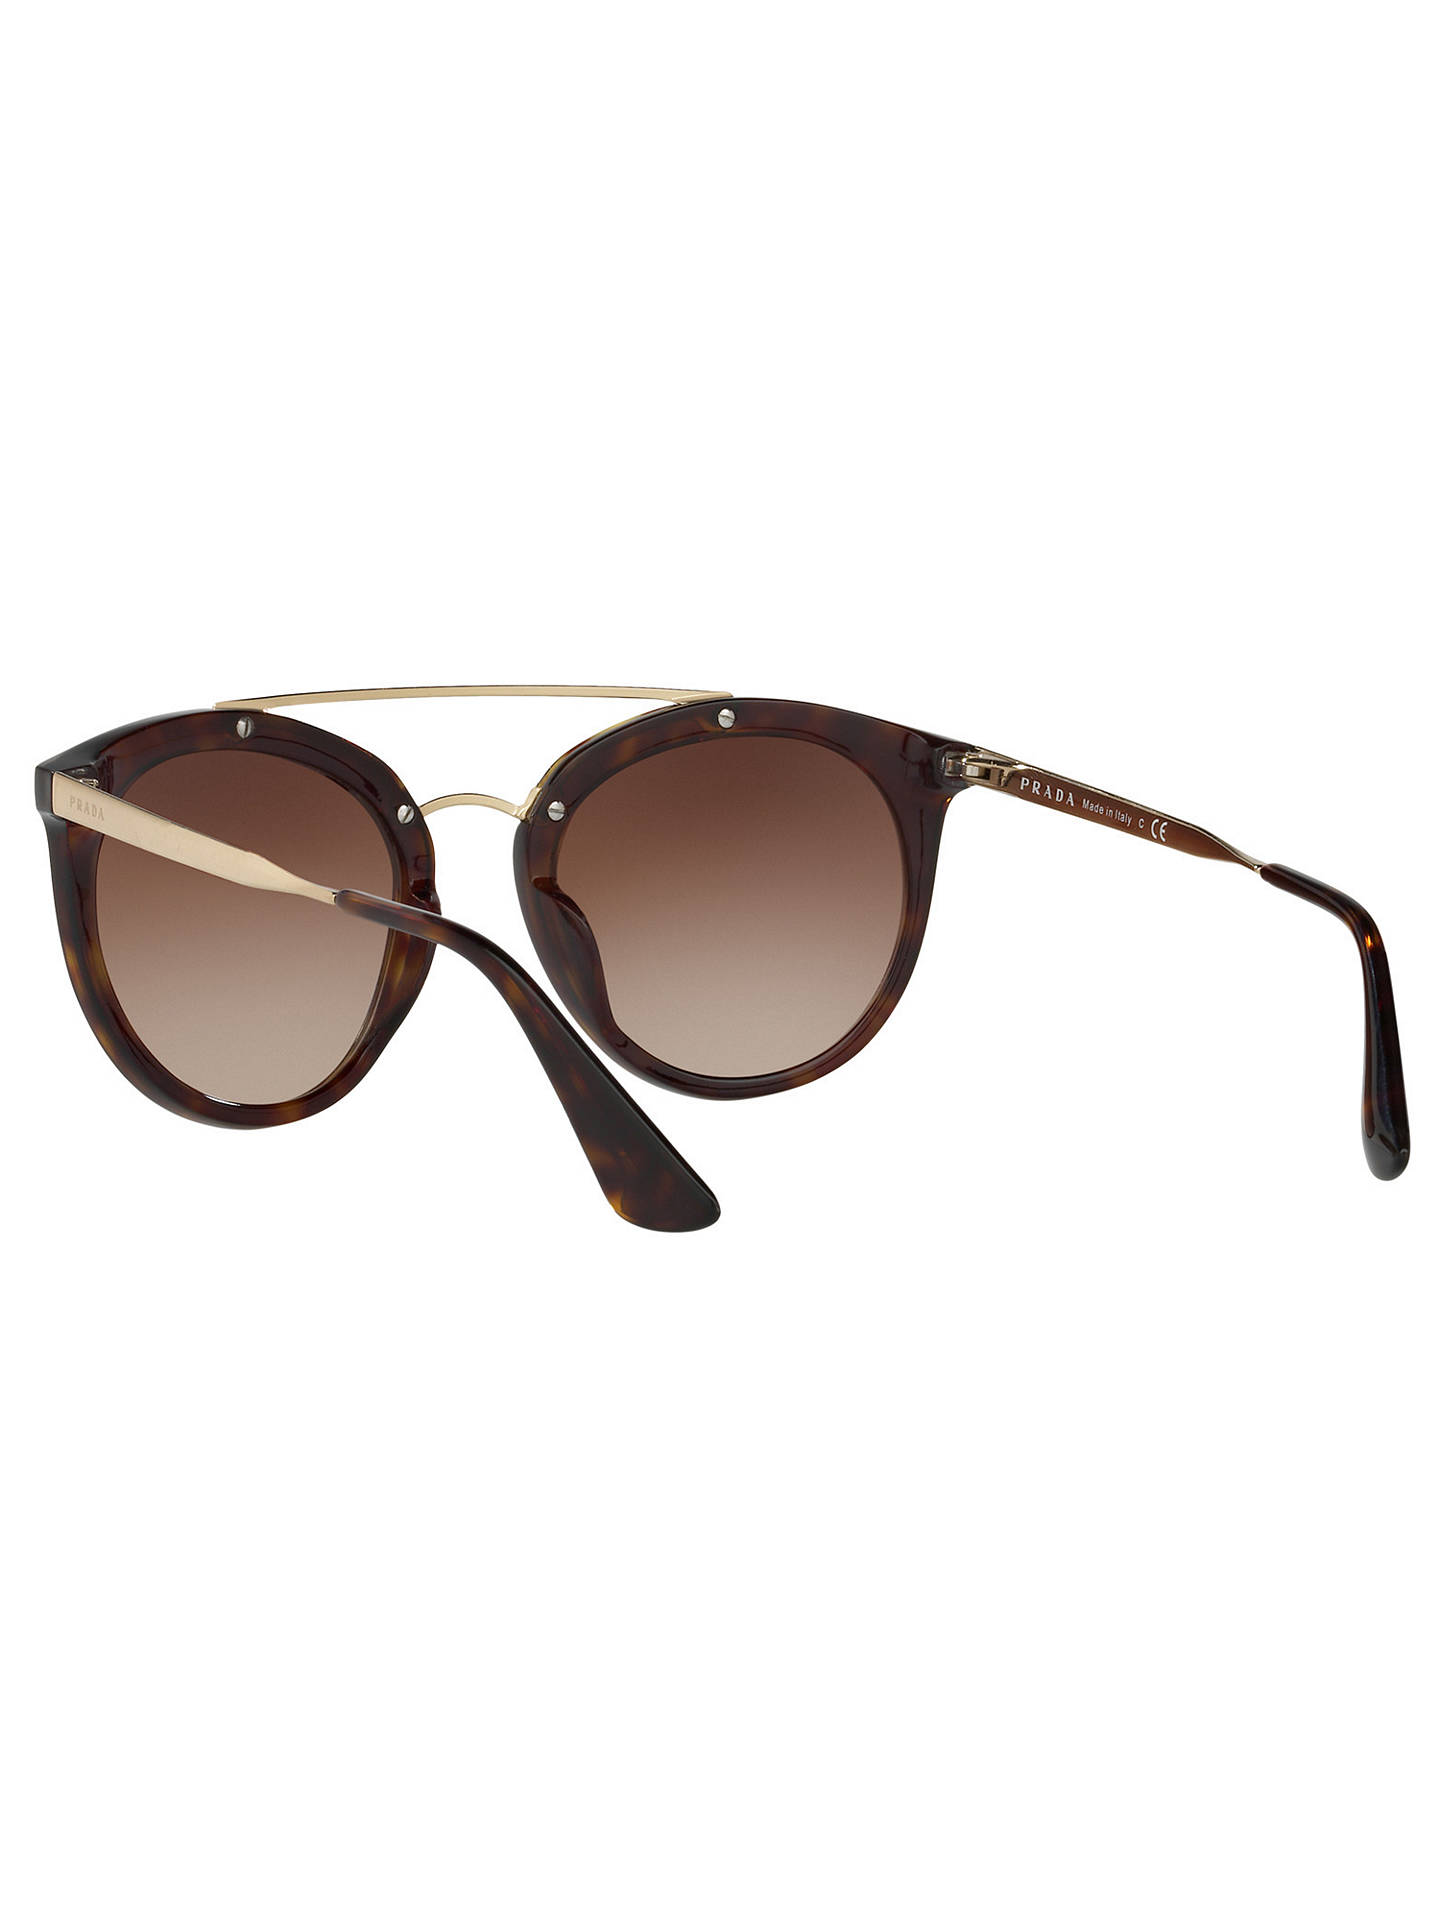 7dd587b4ad6c6 ... cheapest buyprada pr 23ss cinema oval sunglasses tortoise brown  gradient online at johnlewis d1289 22b60